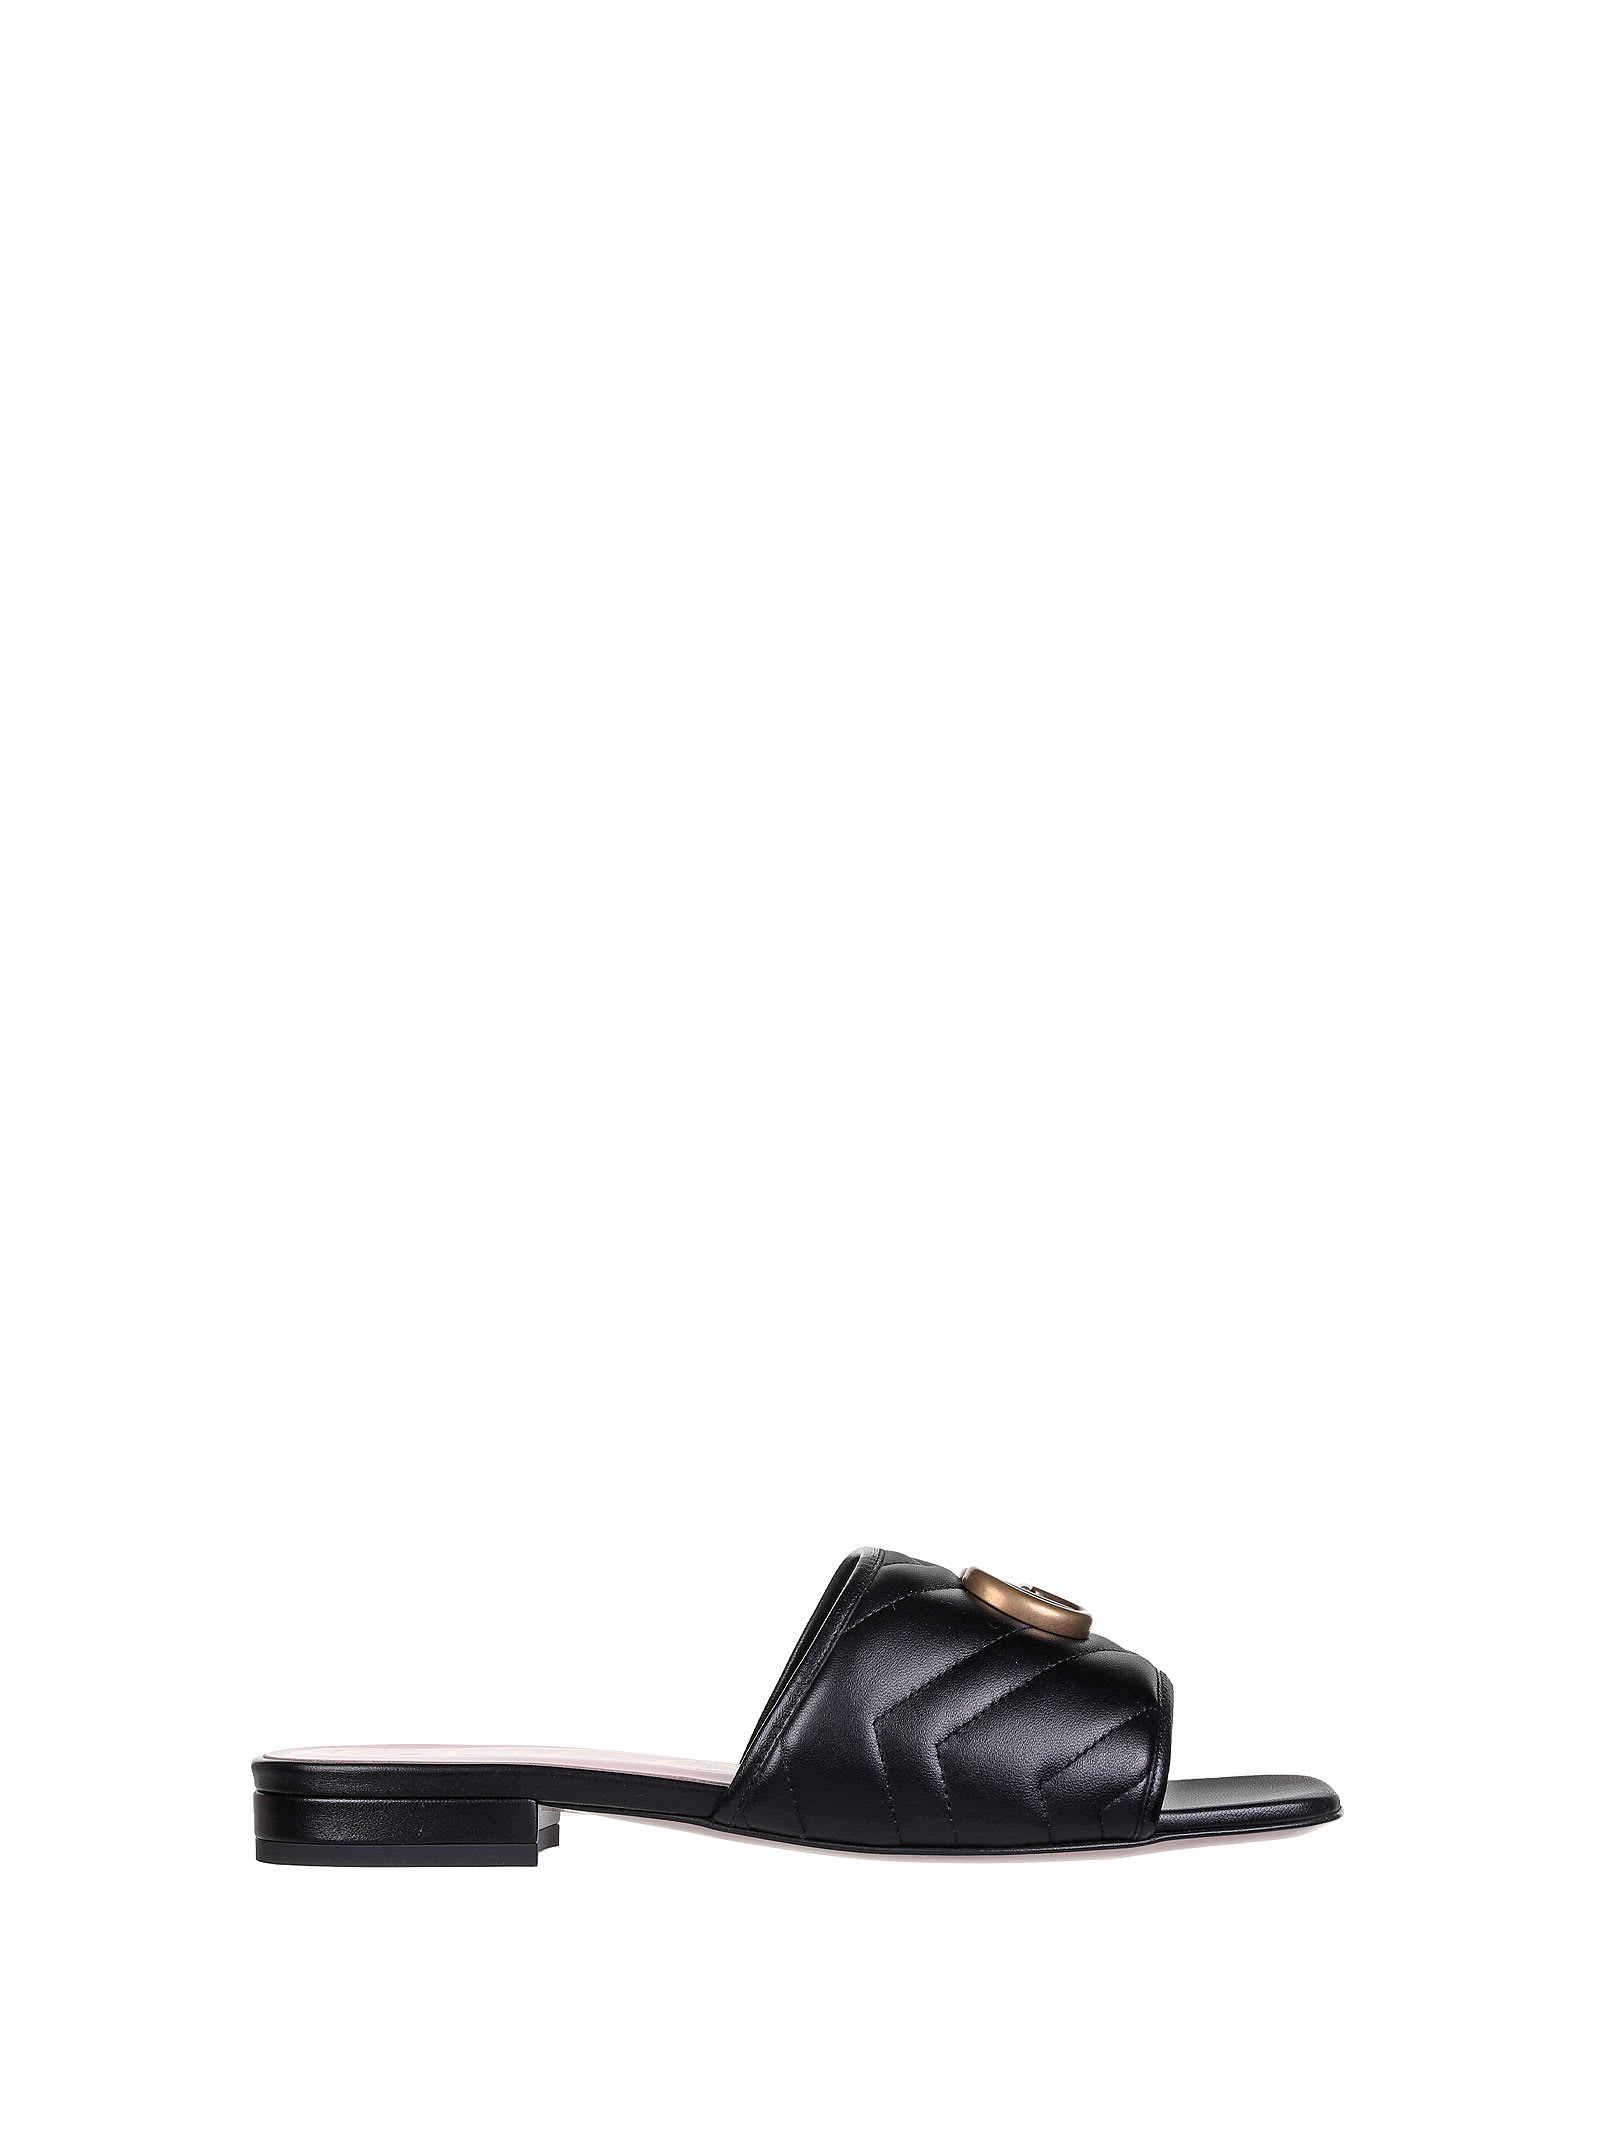 Buy Gucci Double G Black Sandal online, shop Gucci shoes with free shipping